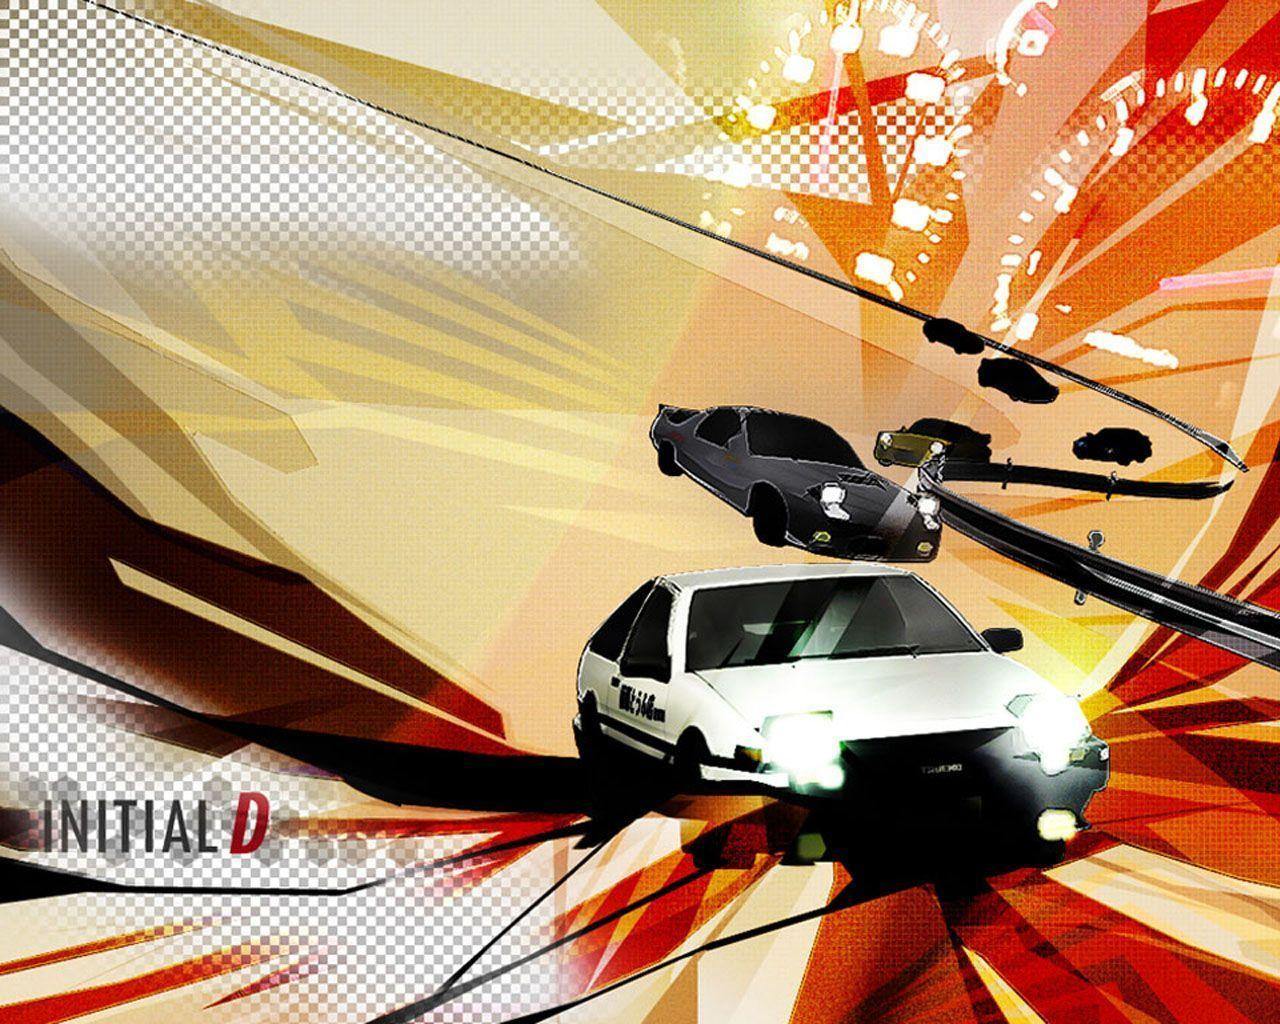 Image For > Initial D Wallpapers